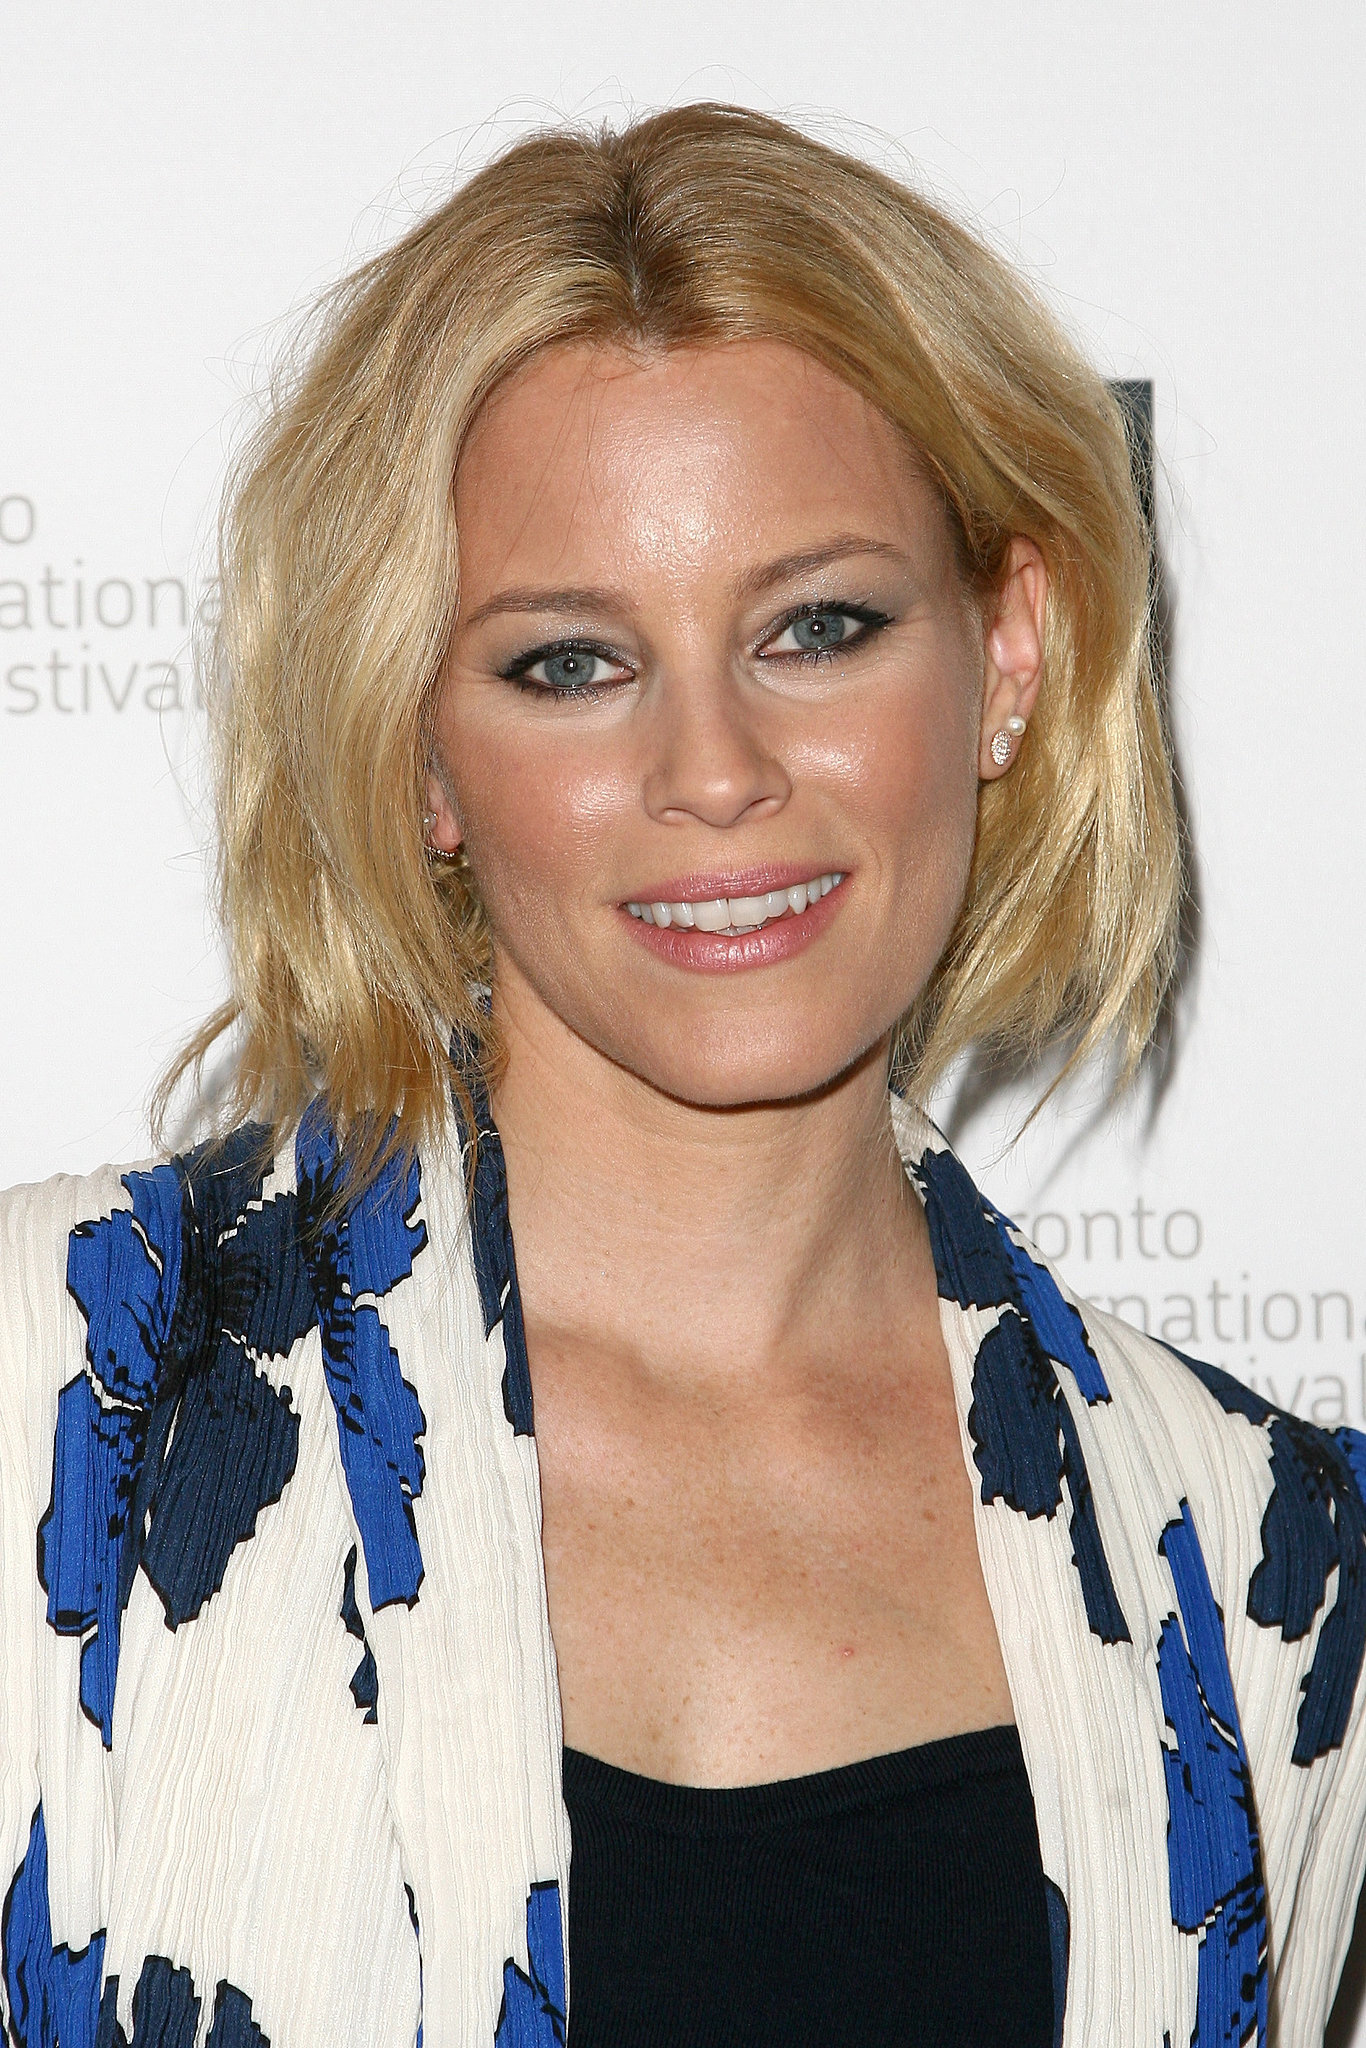 Elizabeth Banks The Wob Wavy Lob Is The Hot New